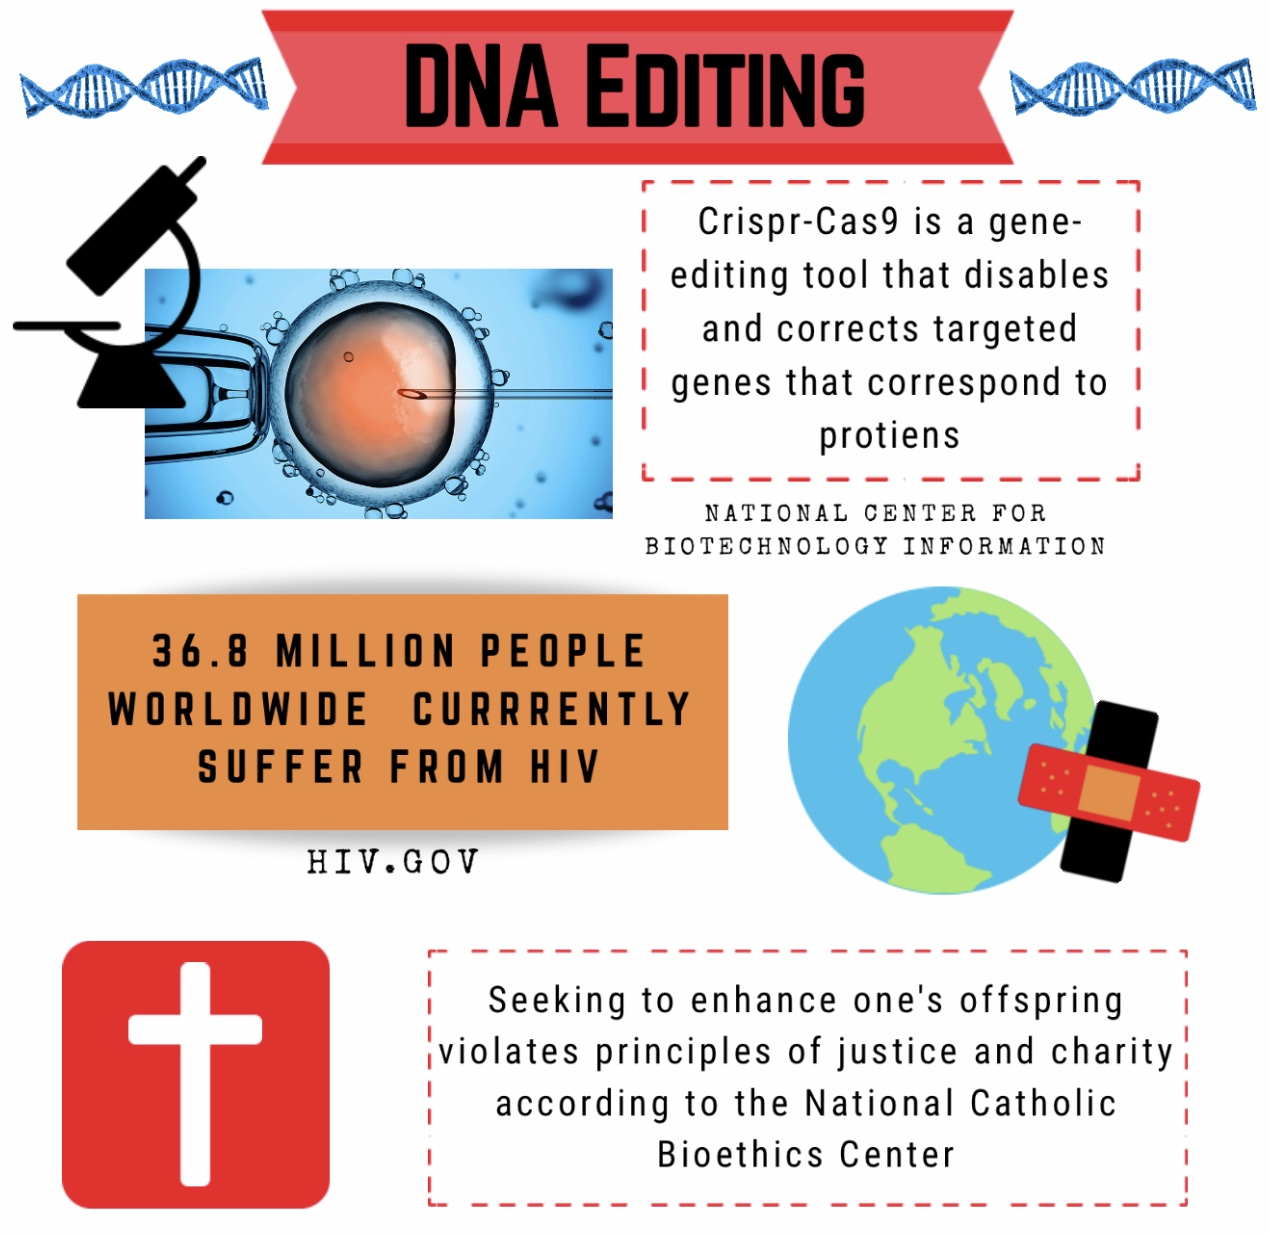 Statistics from the National Center for Biotechnology Information, HIV.gov, and the National Catholic Bioethics Center.